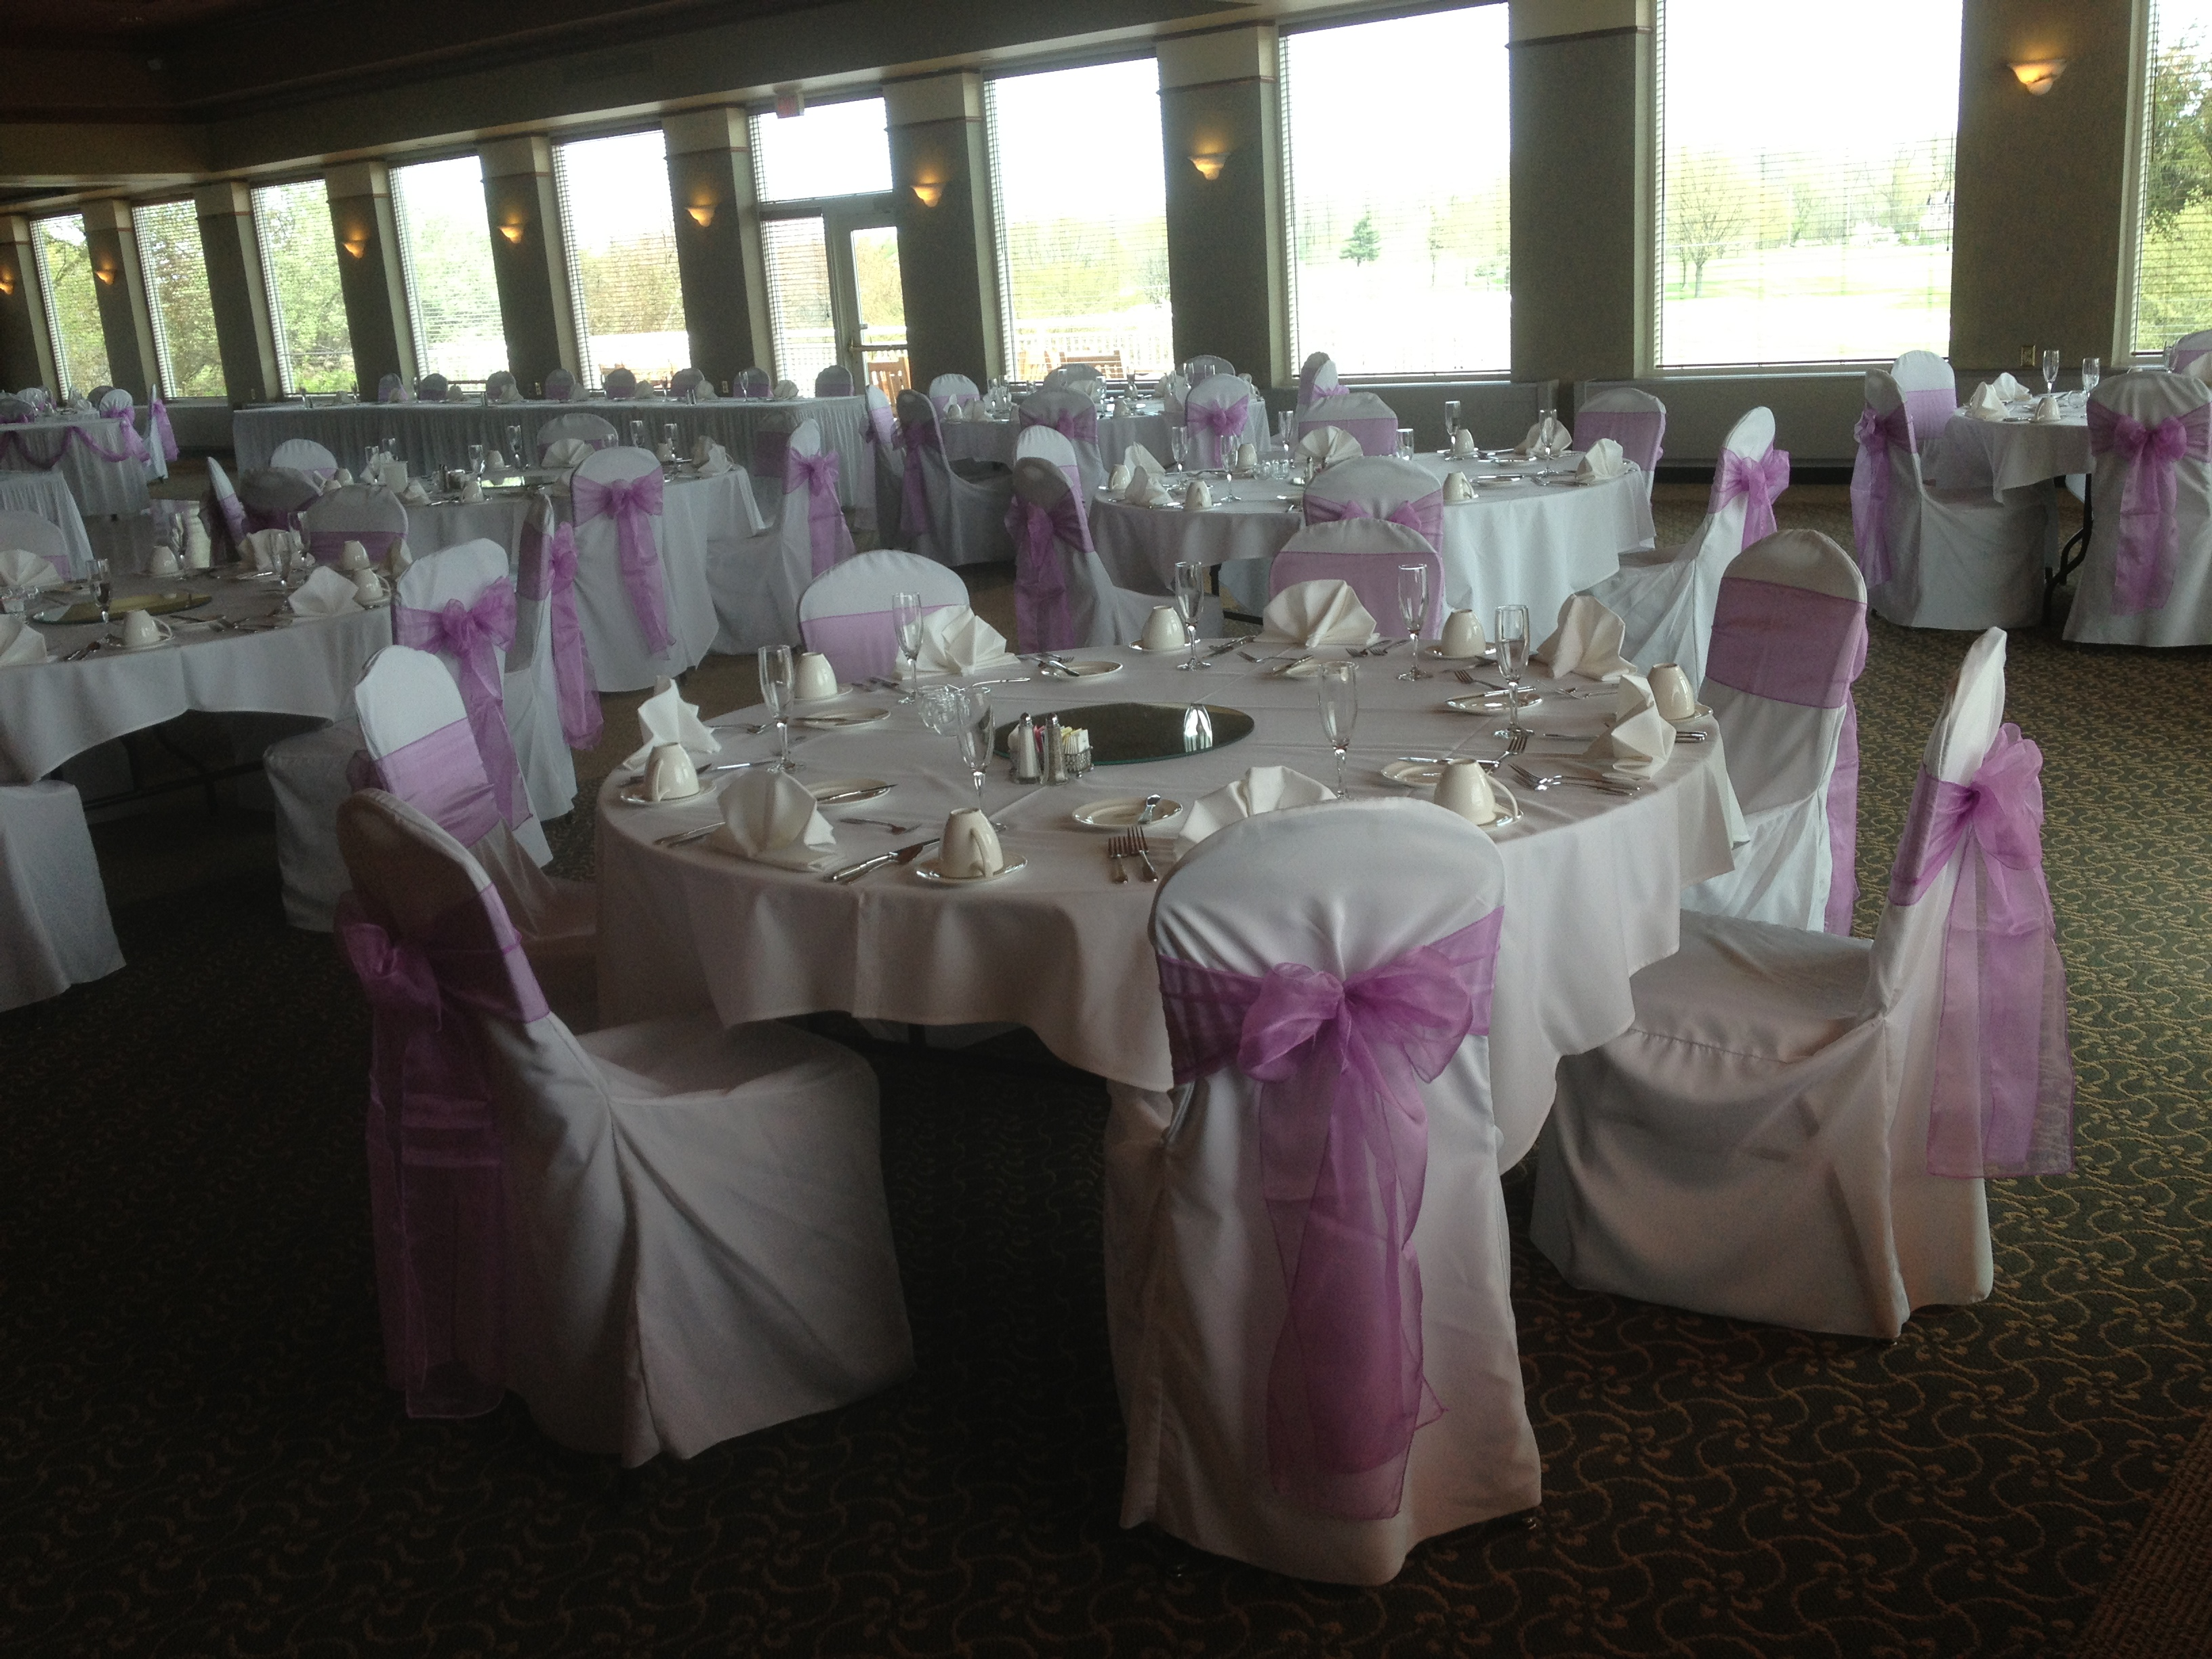 tablecloths and chair covers for rent pink sashes chairs linens devoted weddings events